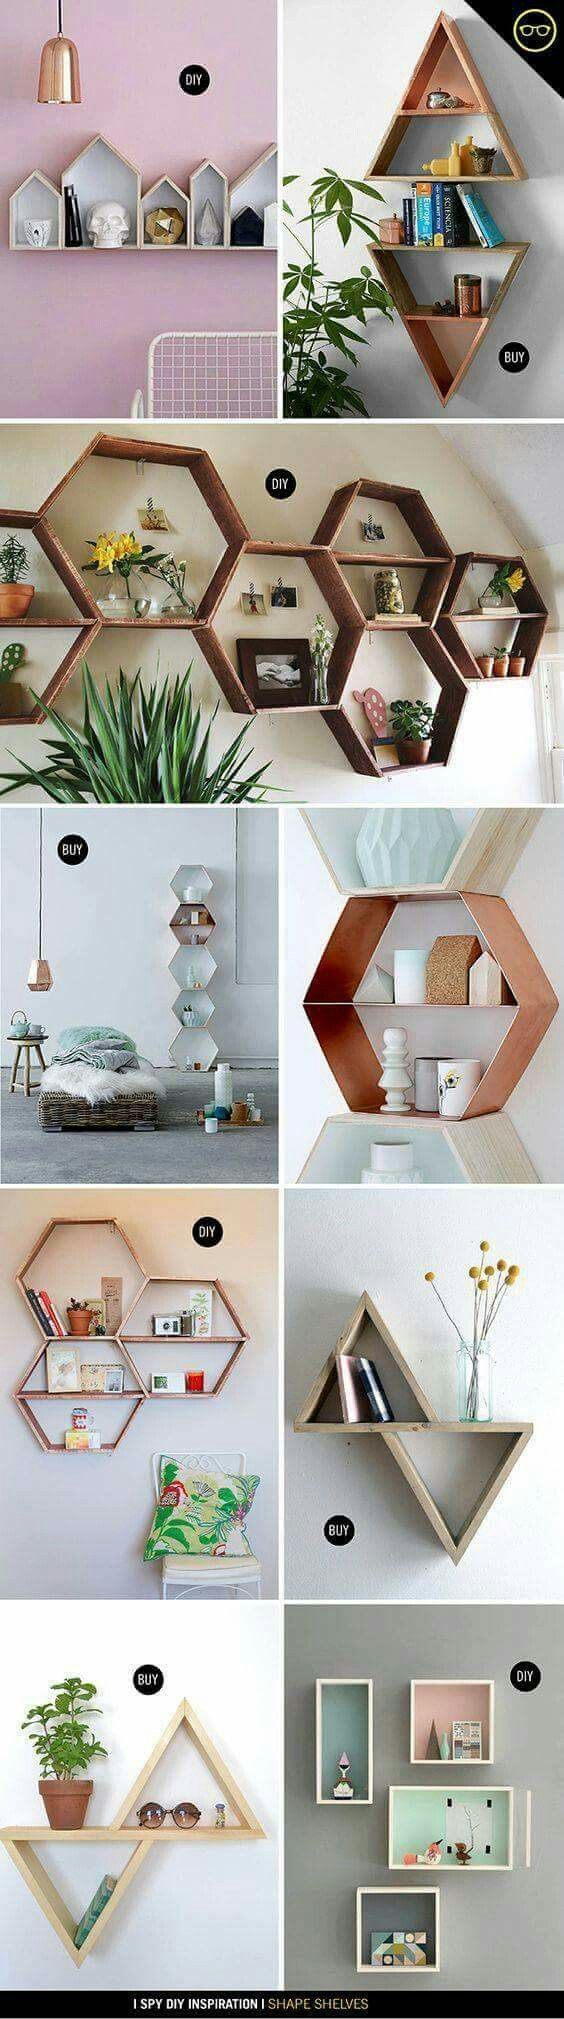 154 best Stay cosy! images on Pinterest | Bar cart, Bar carts and ...